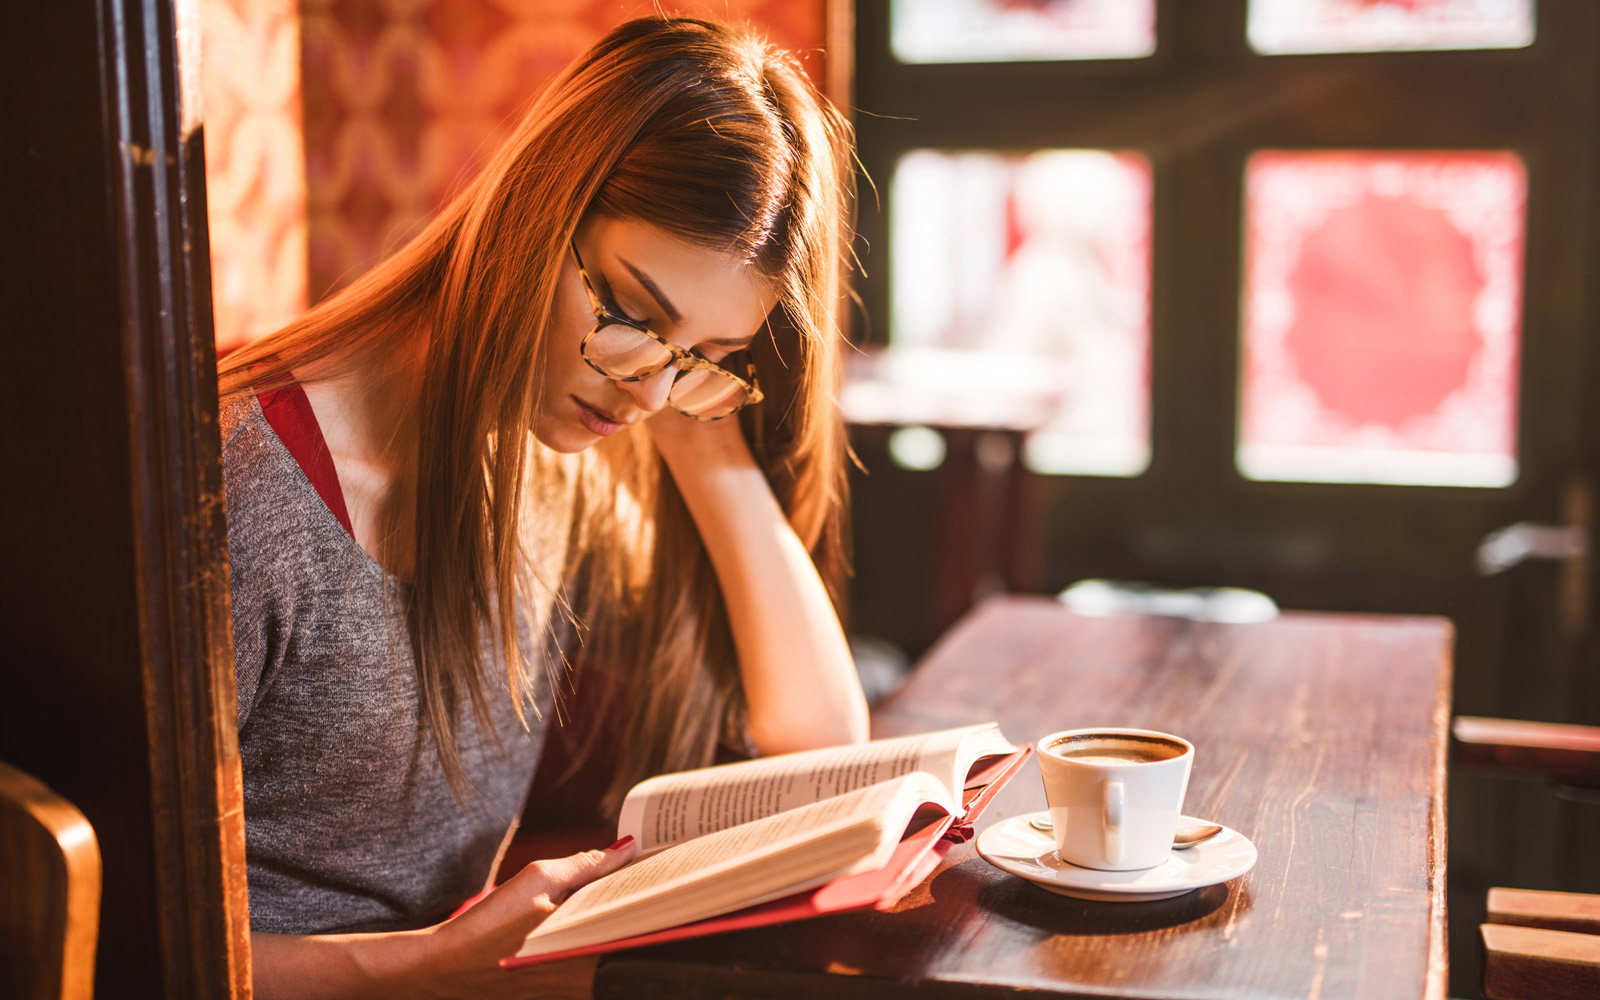 Young beautiful woman reading a book in a cafe